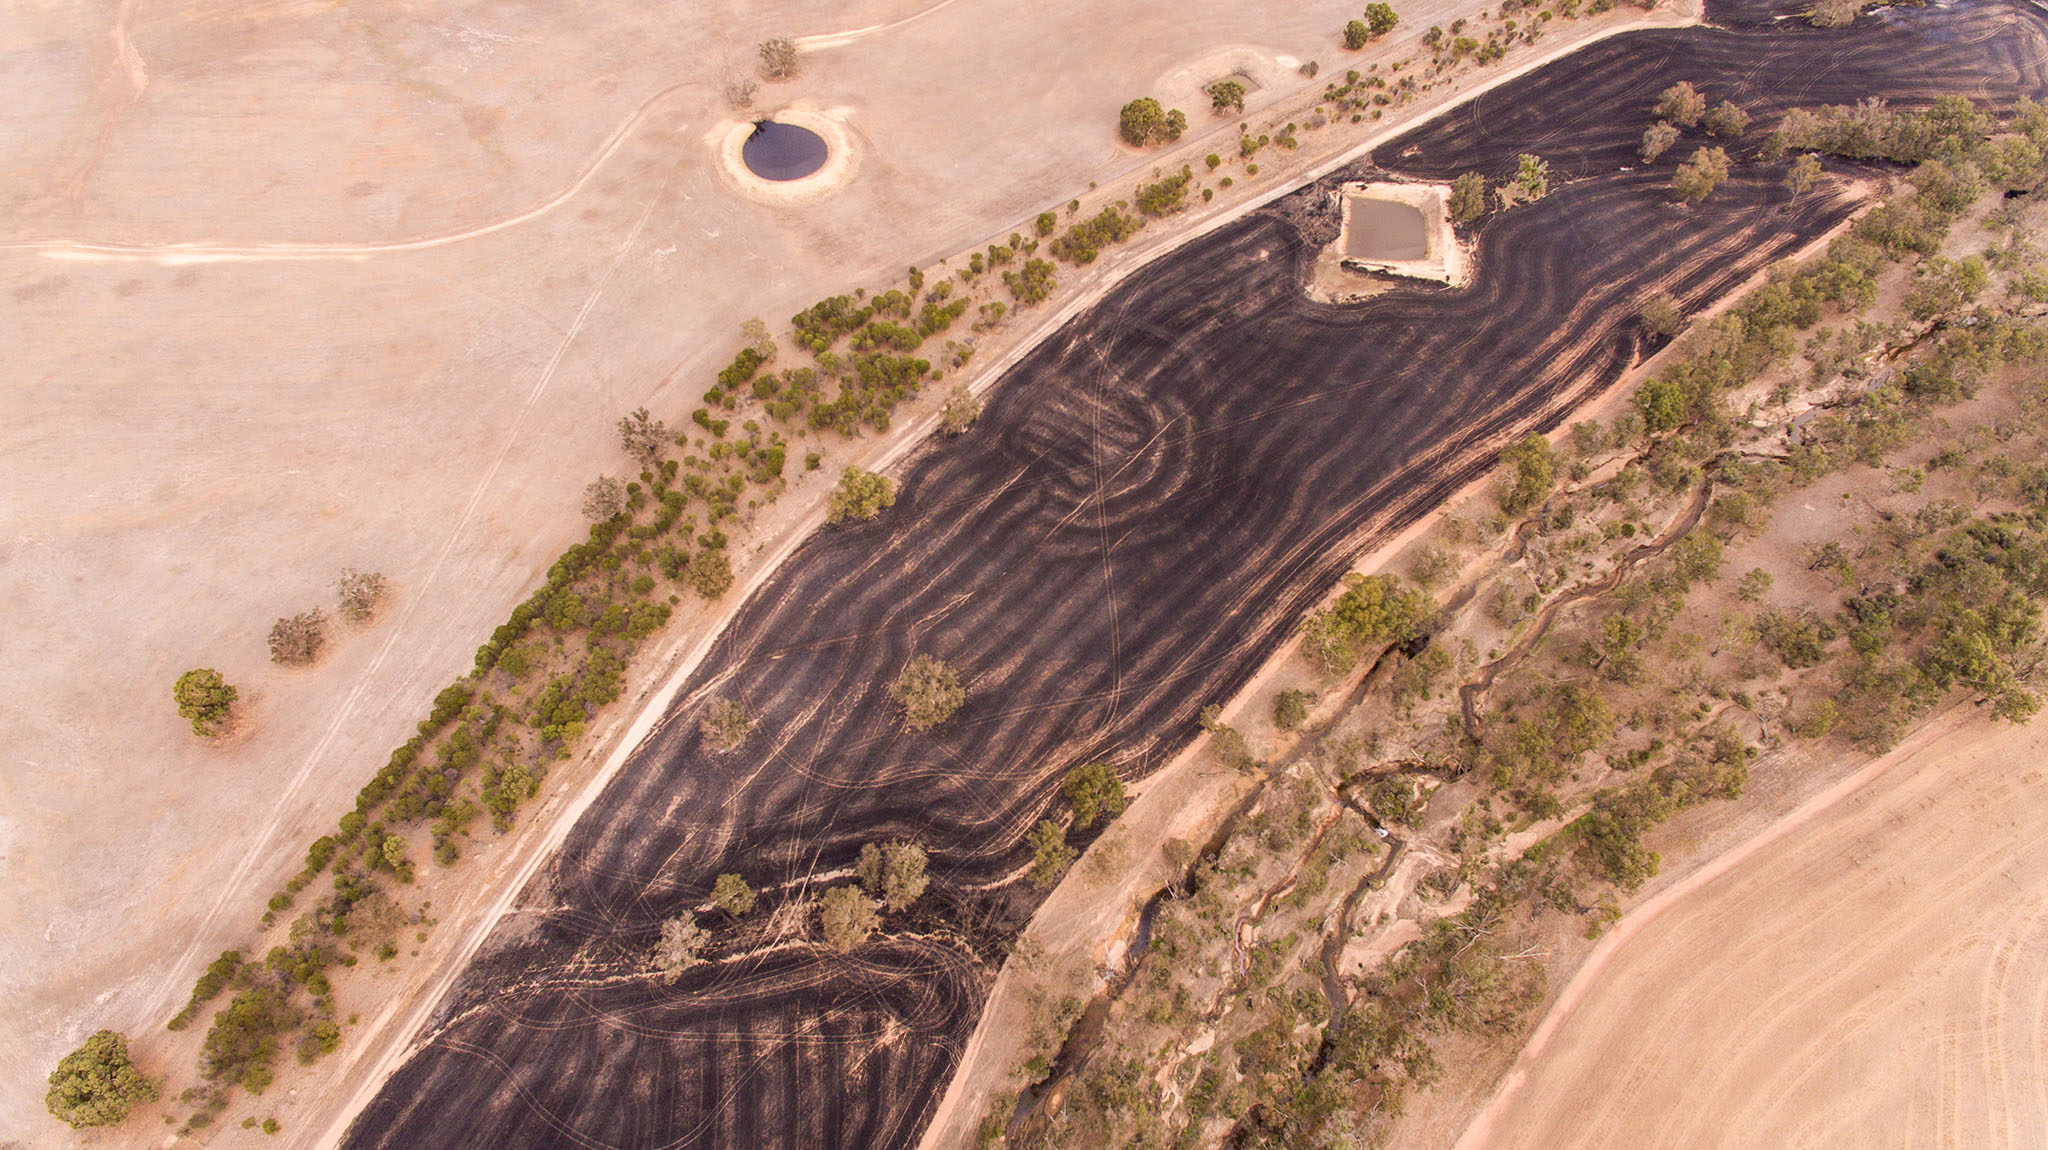 Aerial view of landscape with burnt black band arcing through the frame. Image by caro Telfer, Photographer.